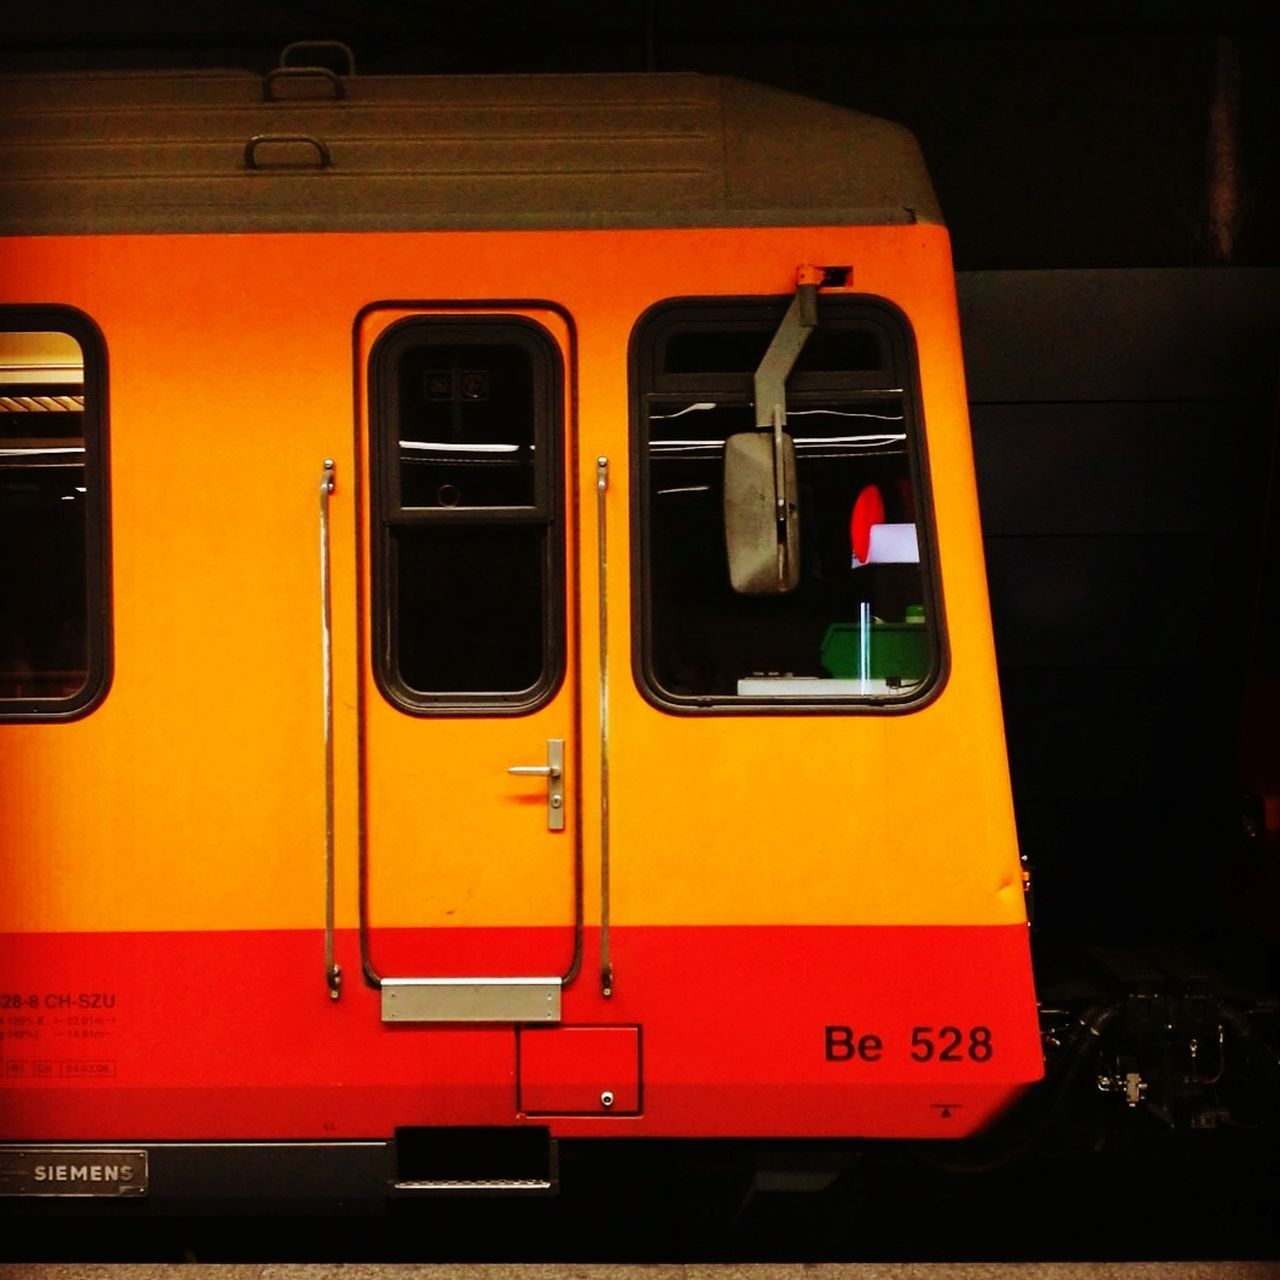 Orange Color Red No People Outdoors Day Zug Zug Fahren Lokomotive S-bahn S-Bahn Zürich Hauptbahnhof S4